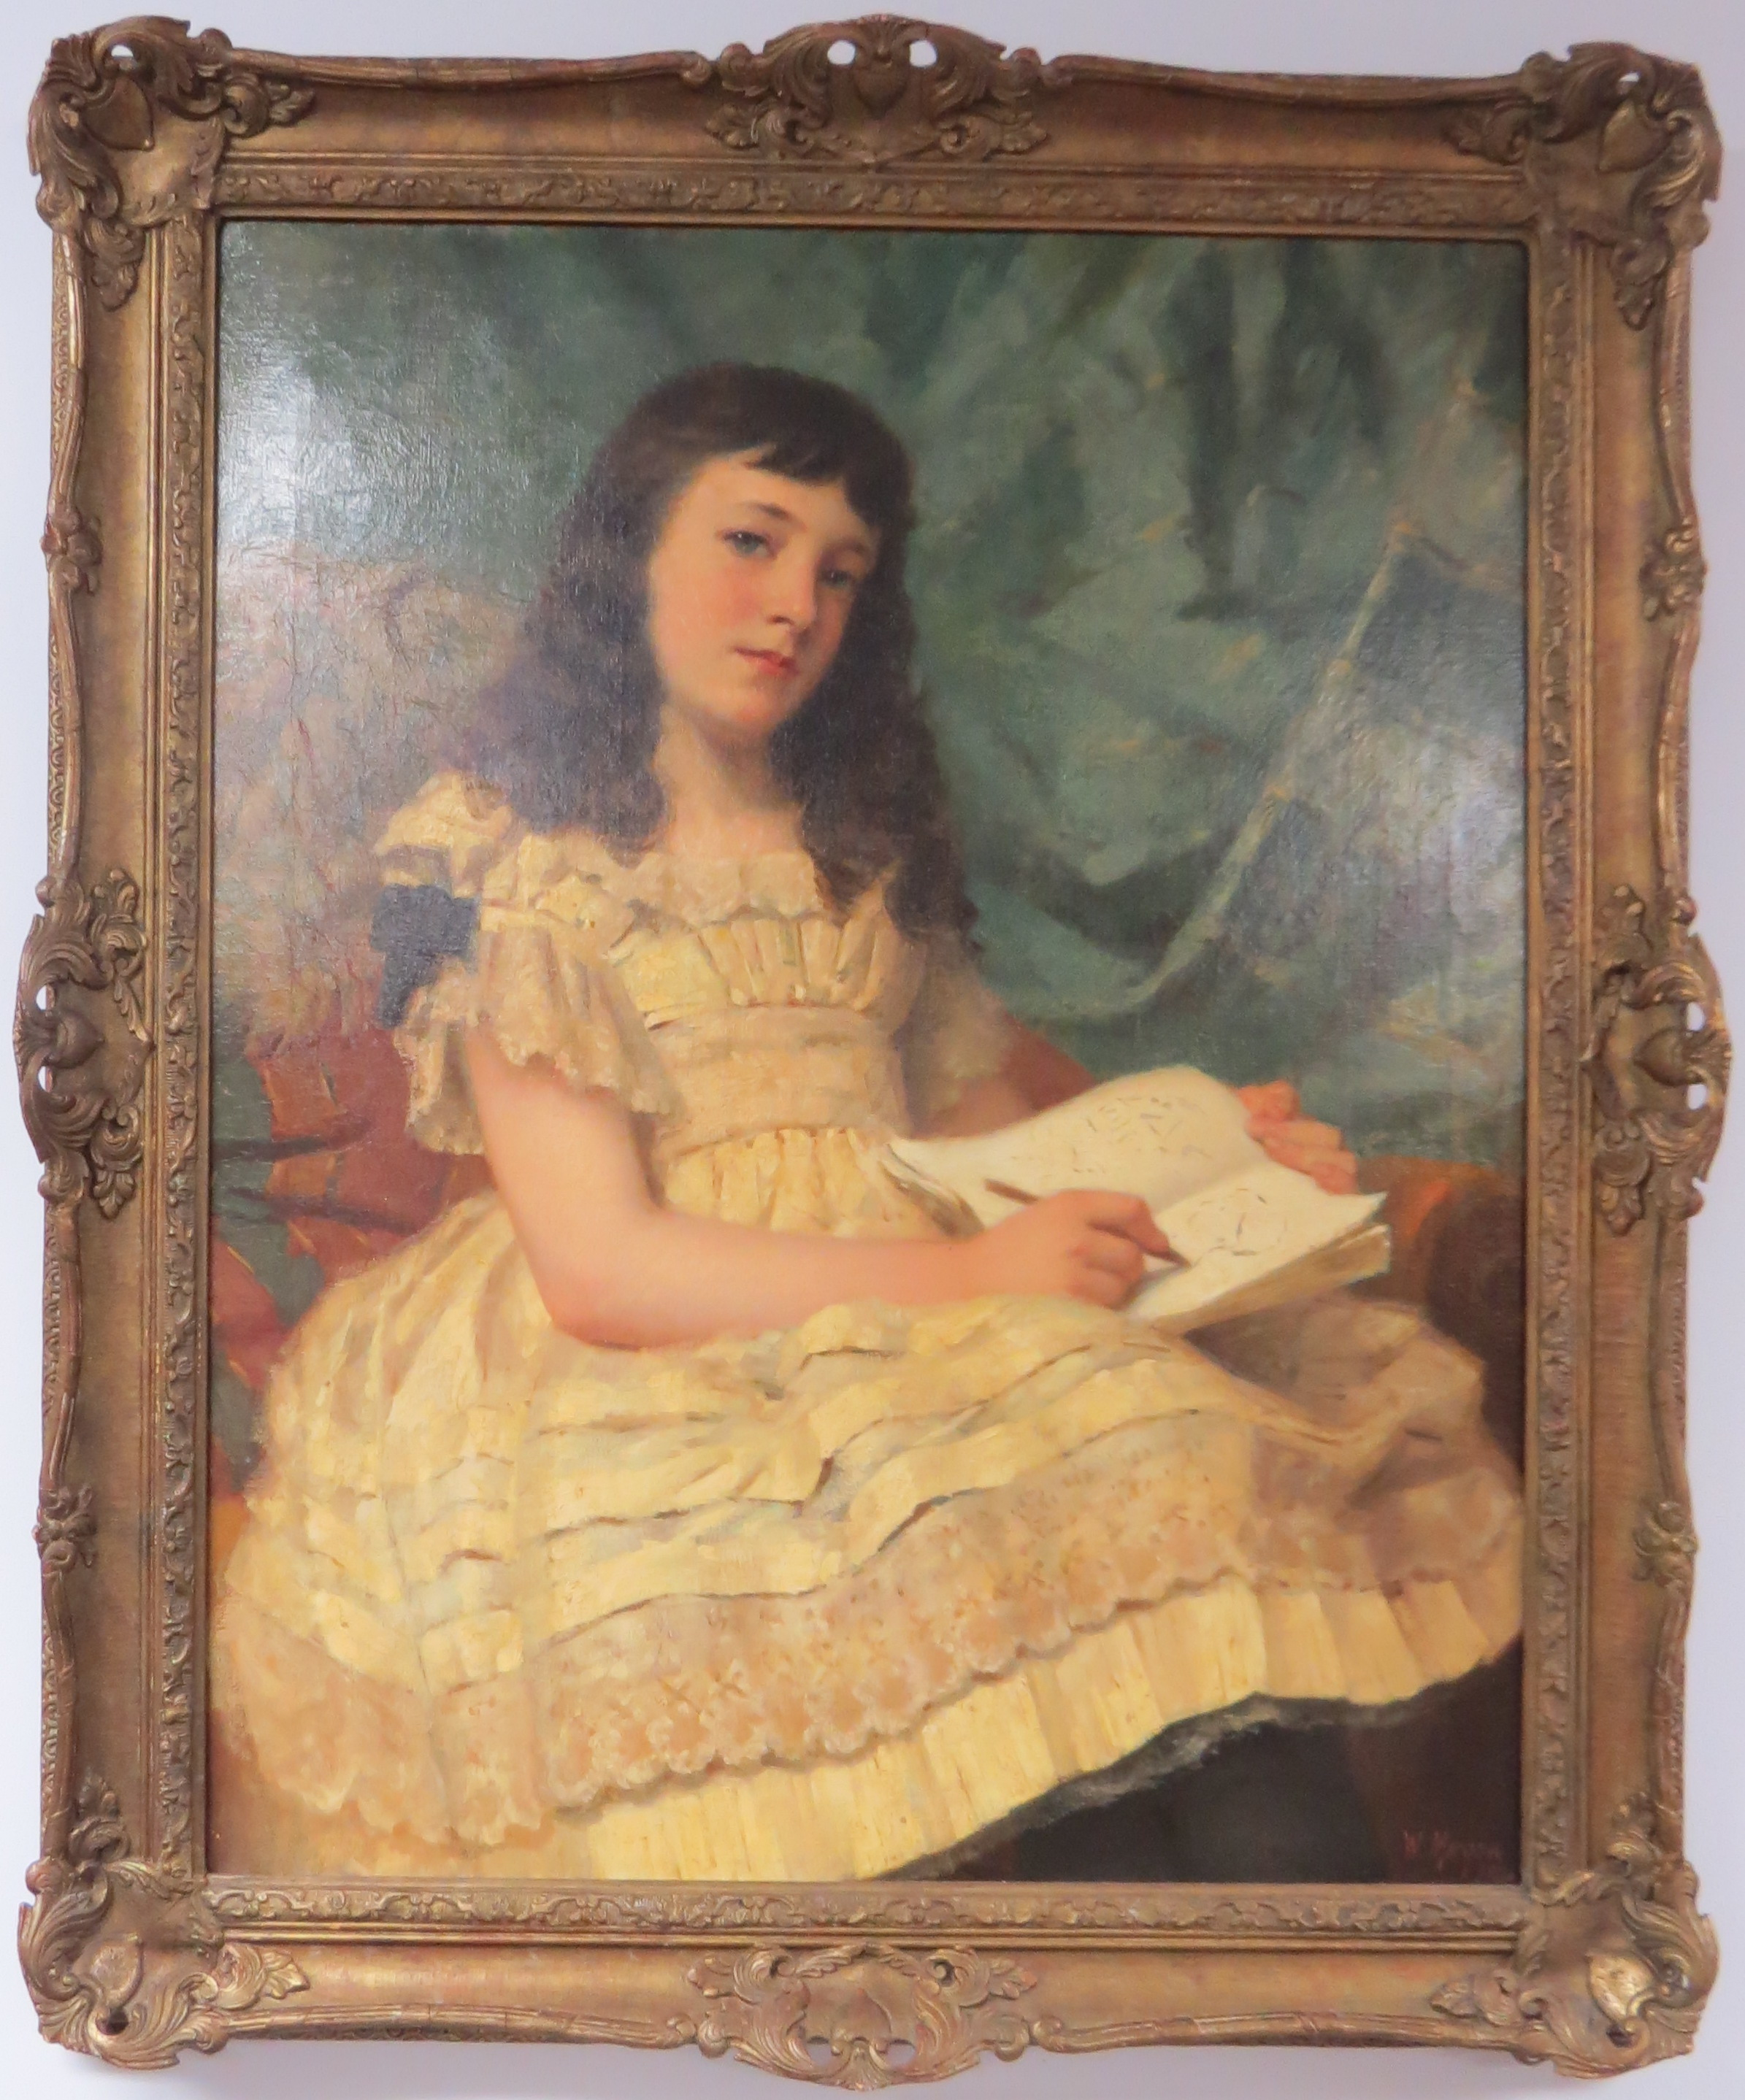 Oil on Canvas of a Young Girl, signed William Morgan (American, 1826-1900)